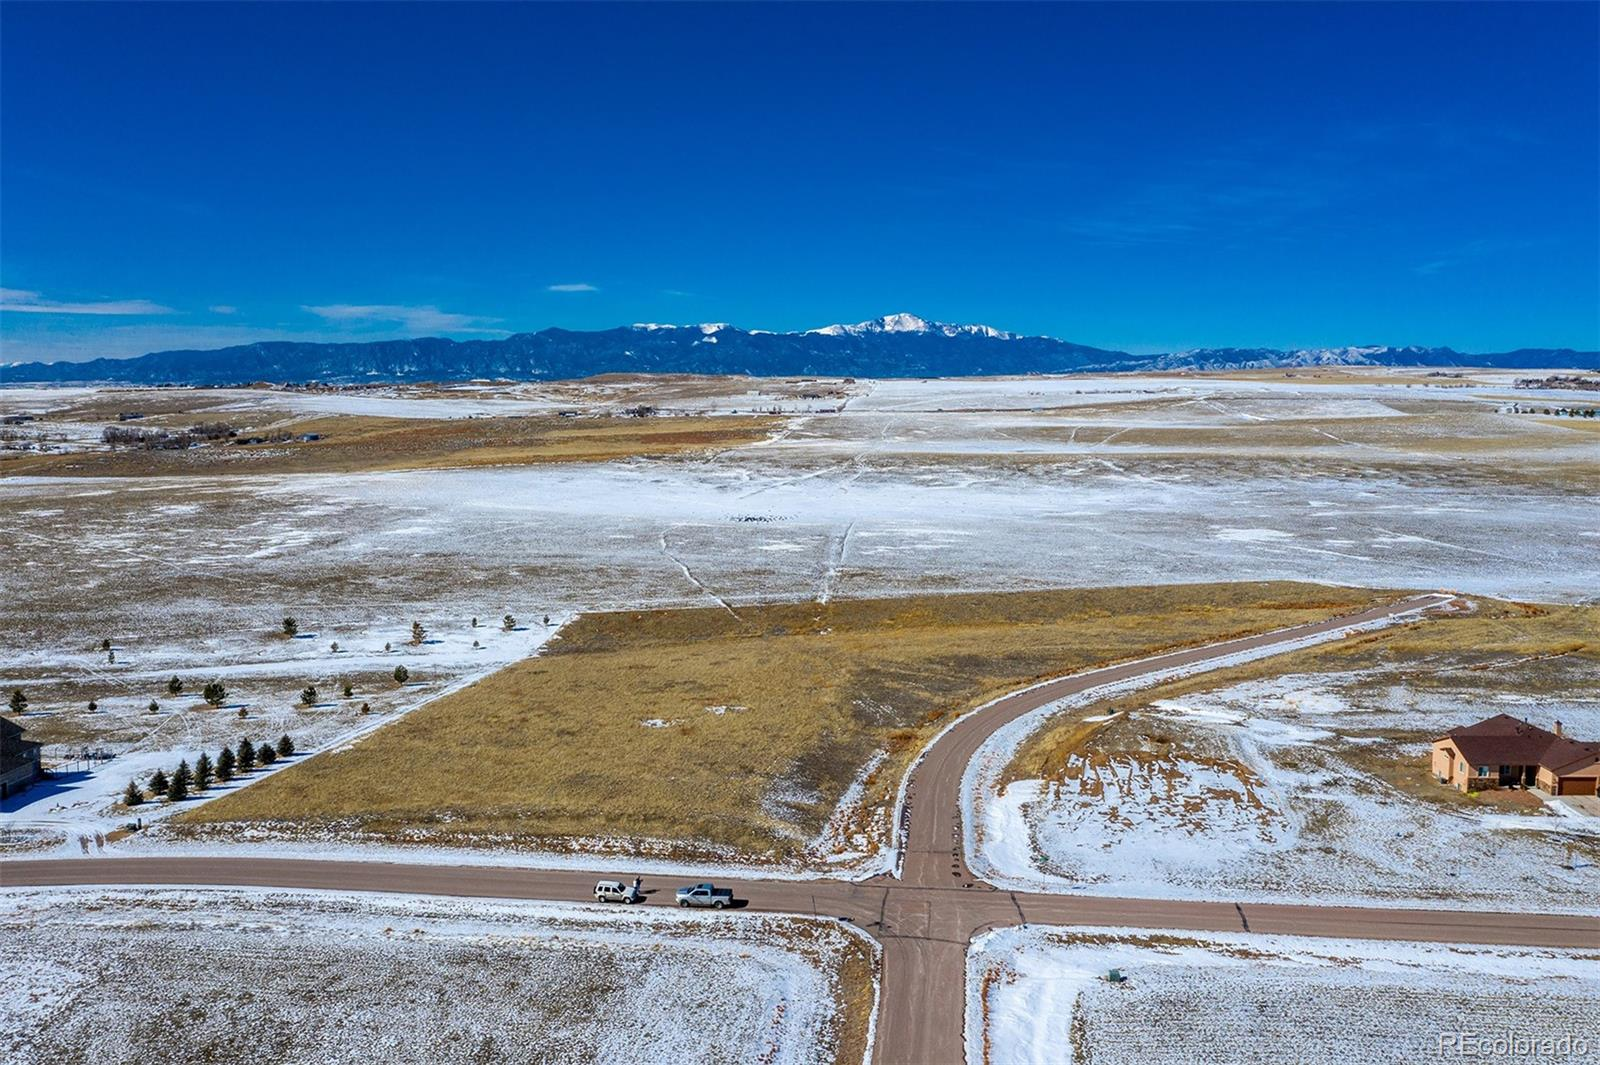 MLS# 7950153 - 4 - 1820 Terri Lee Drive, Peyton, CO 80831